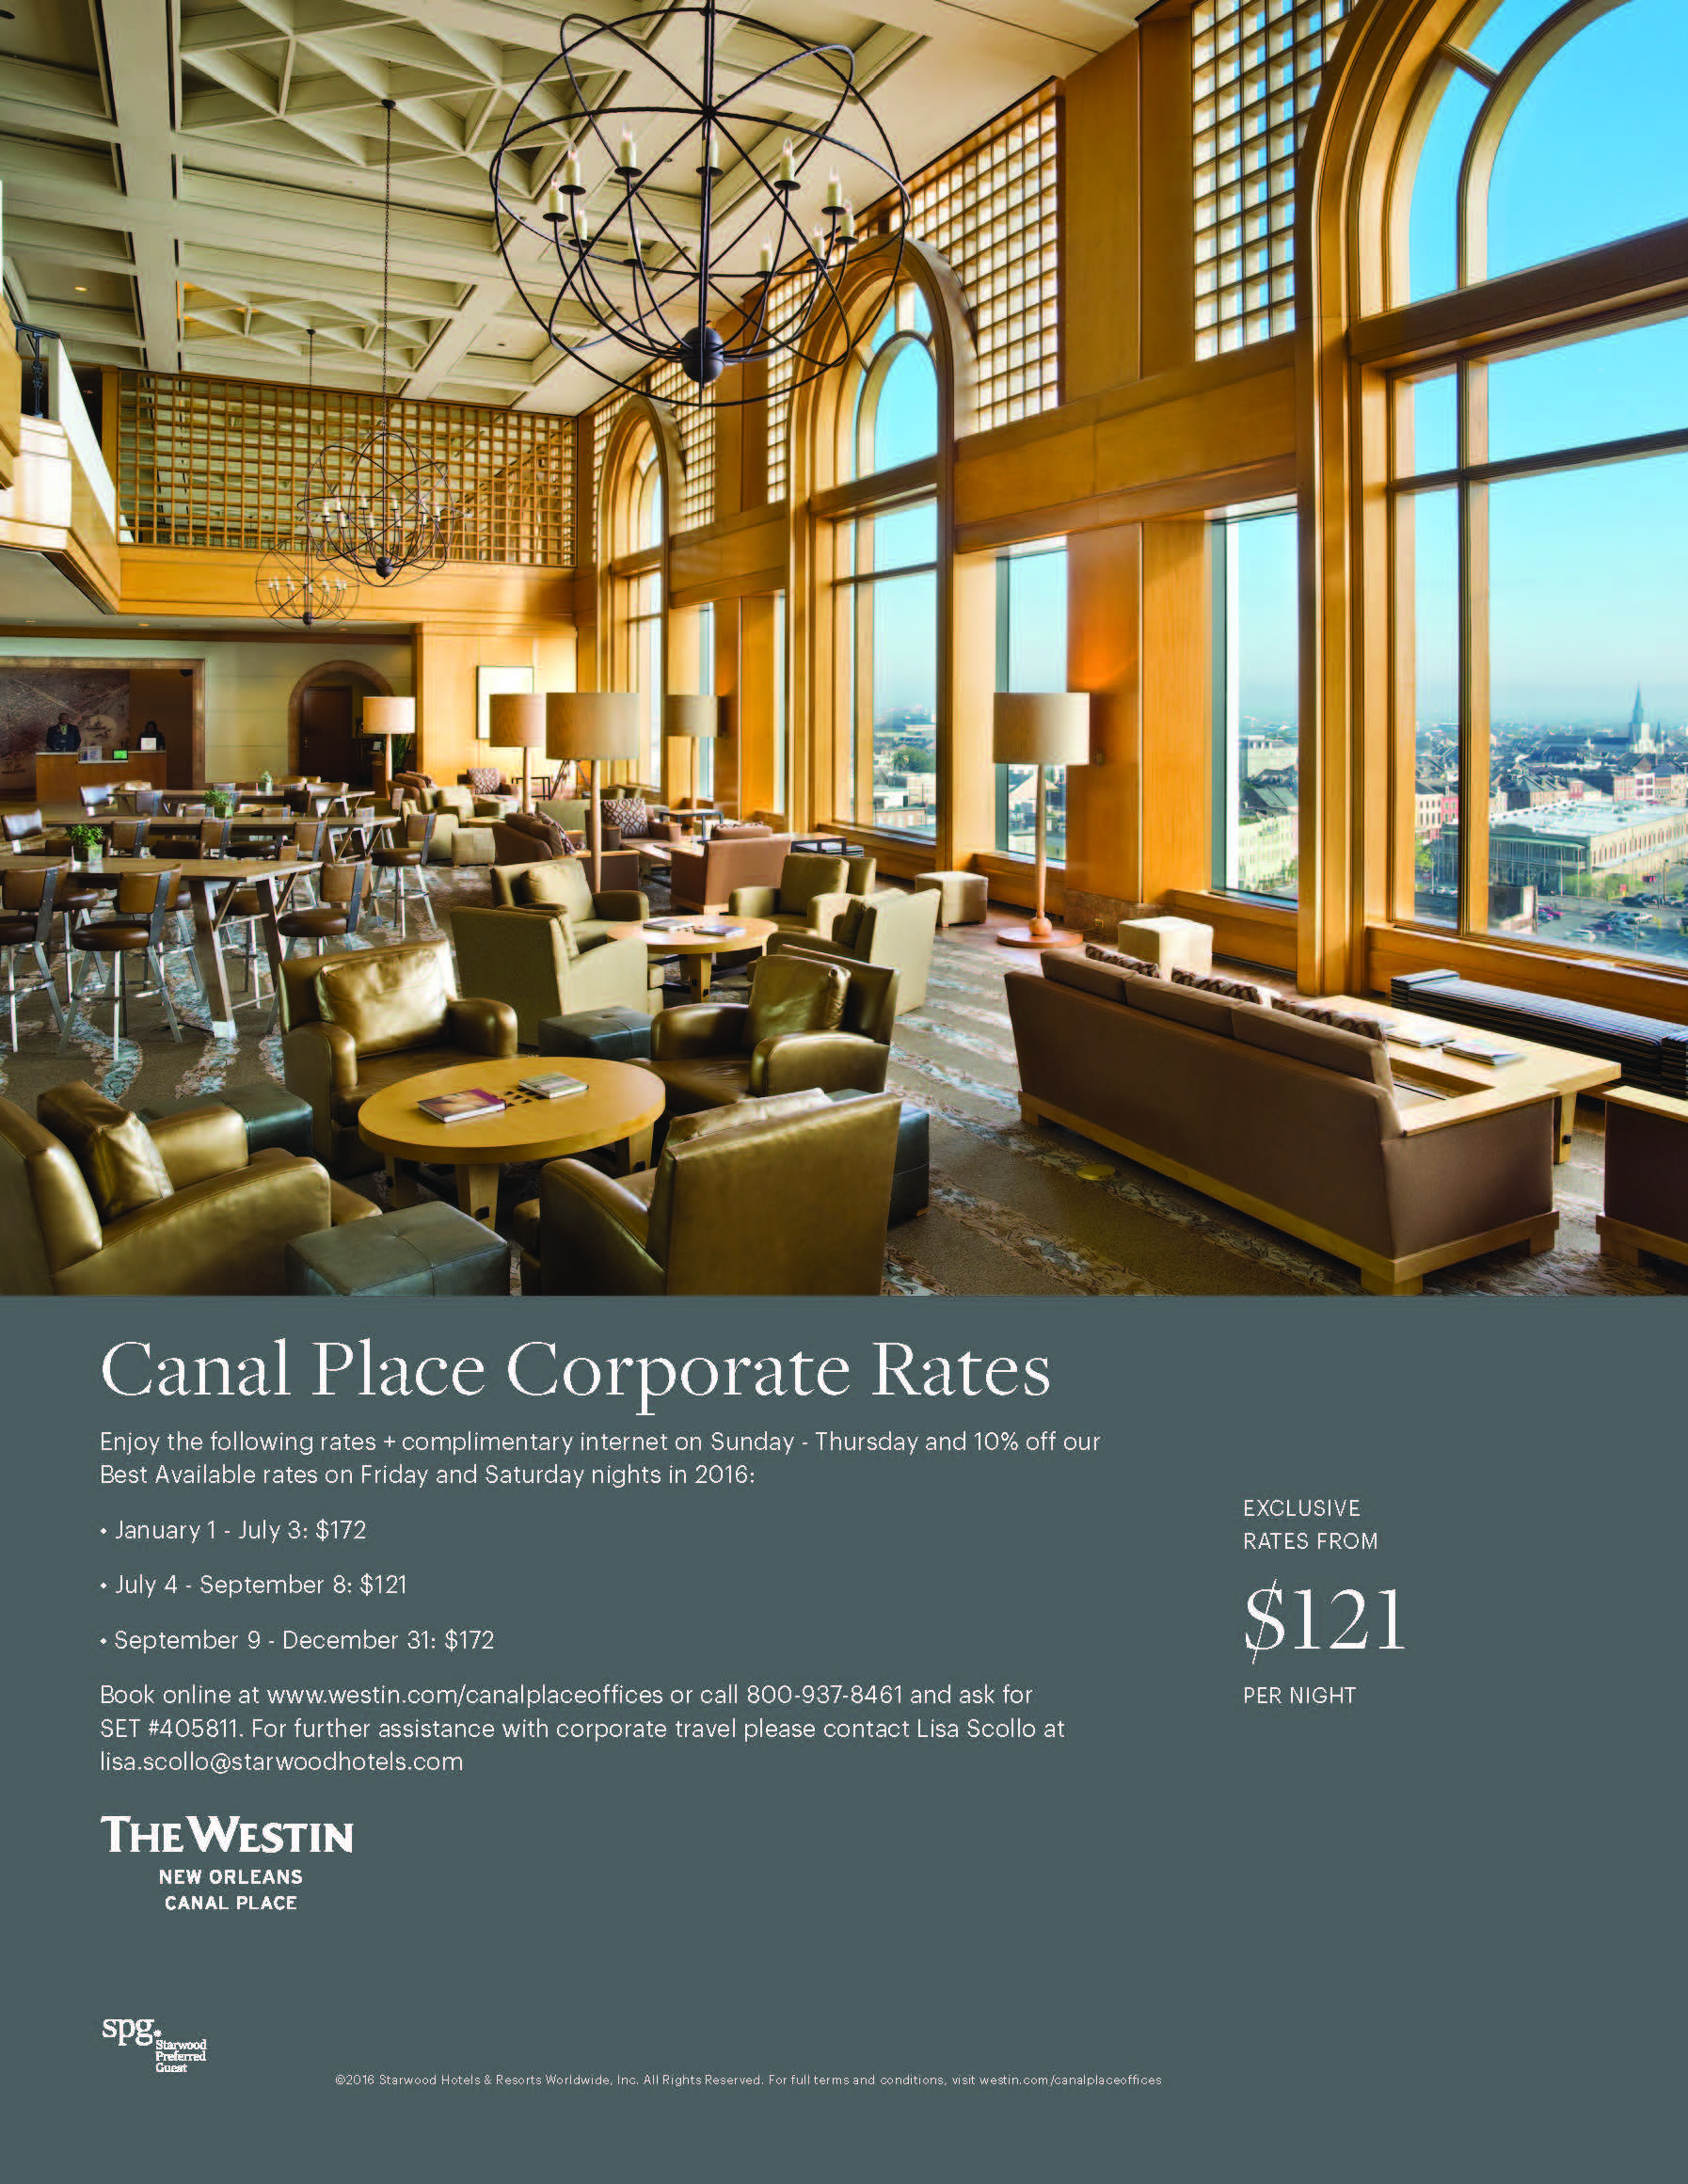 Westin New Orleans - Canal Place 2016 rates